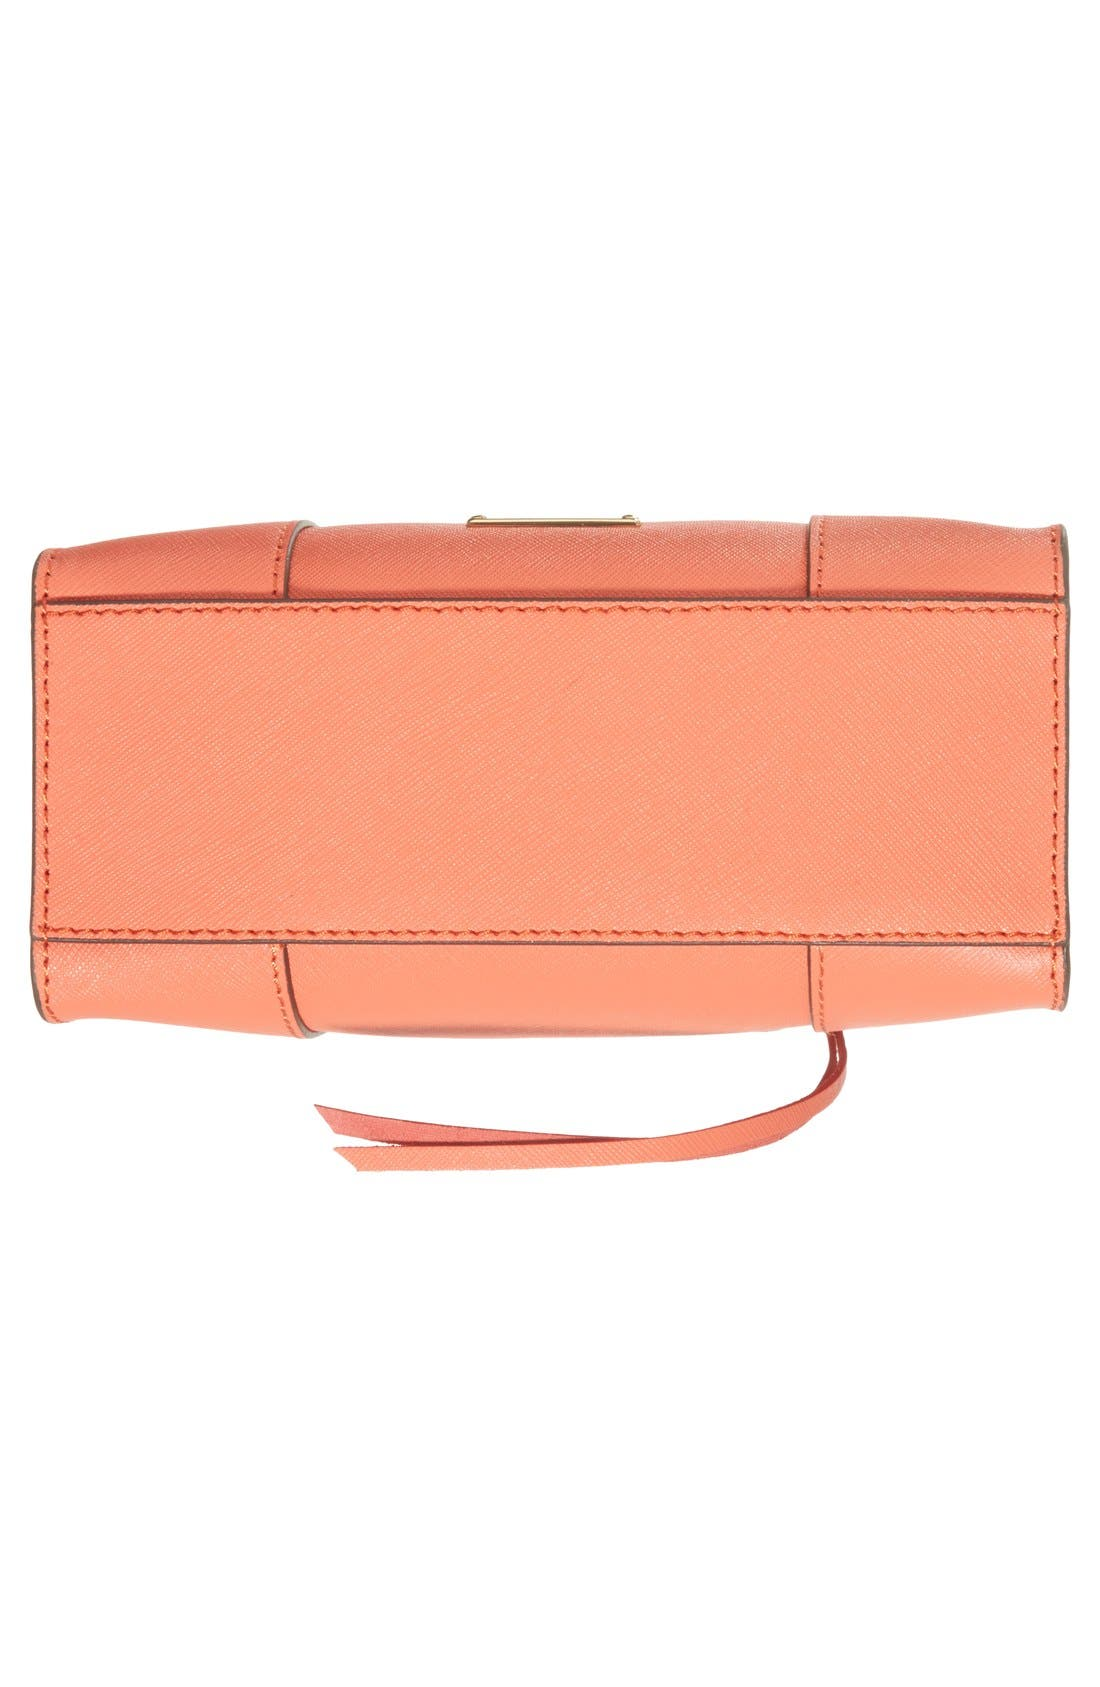 'Mini MAB Tote' Crossbody Bag,                             Alternate thumbnail 72, color,